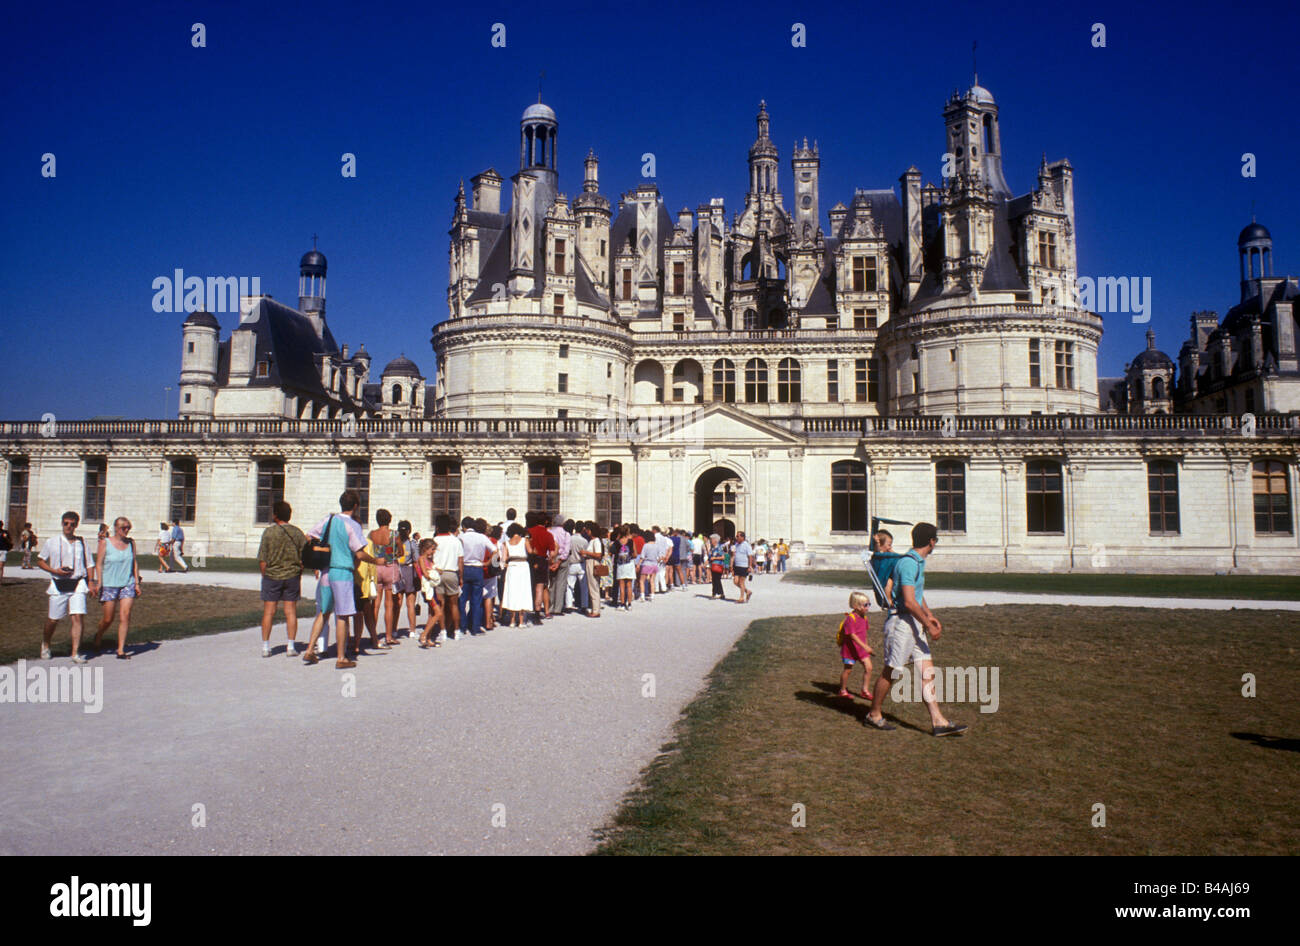 standing in line in chambord castle entrance paris france - Stock Image